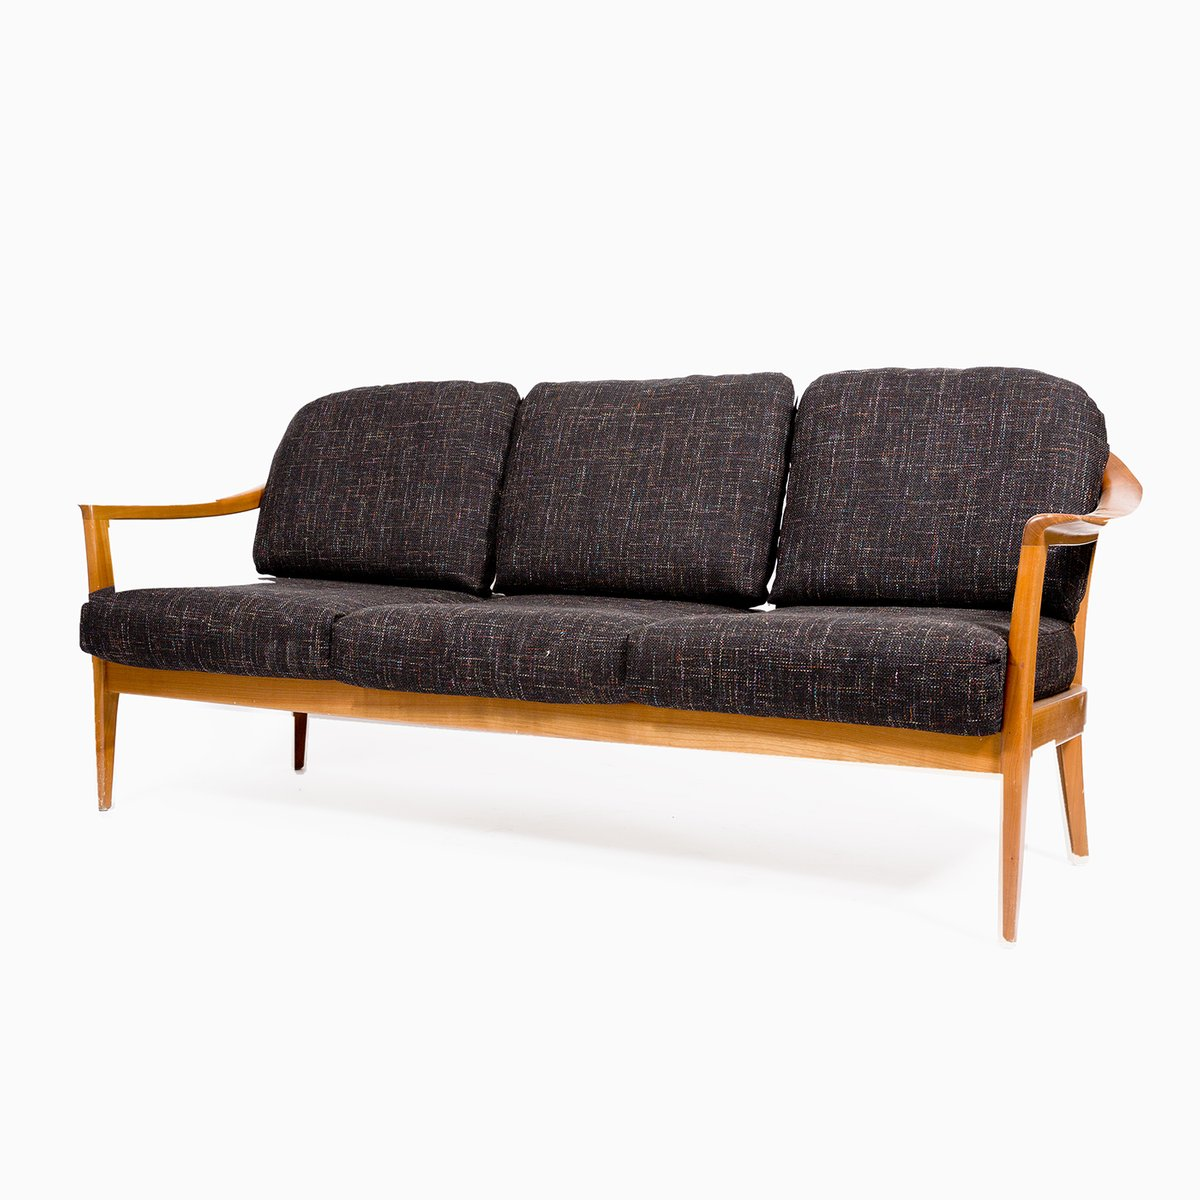 Vintage German Three Seater Sofa From Wilhelm Knoll 1960s For Sale At Pamono